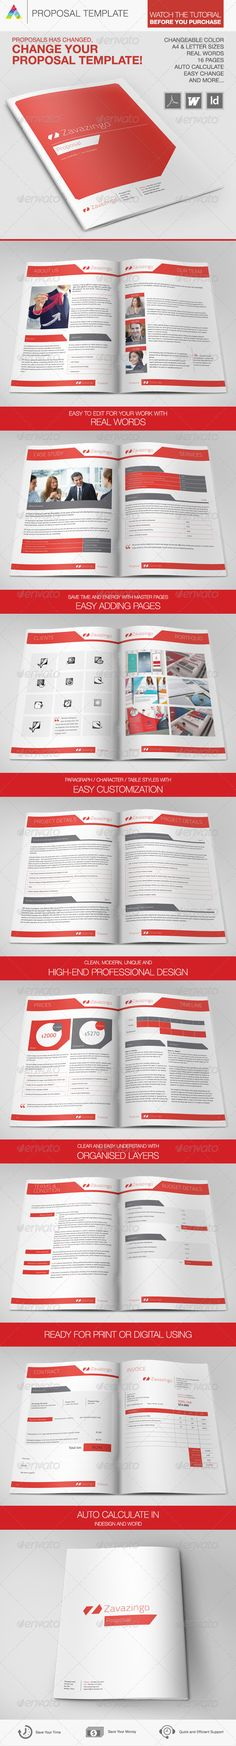 Project Proposal Template (Updated) Proposal templates, Project - project proposal word template